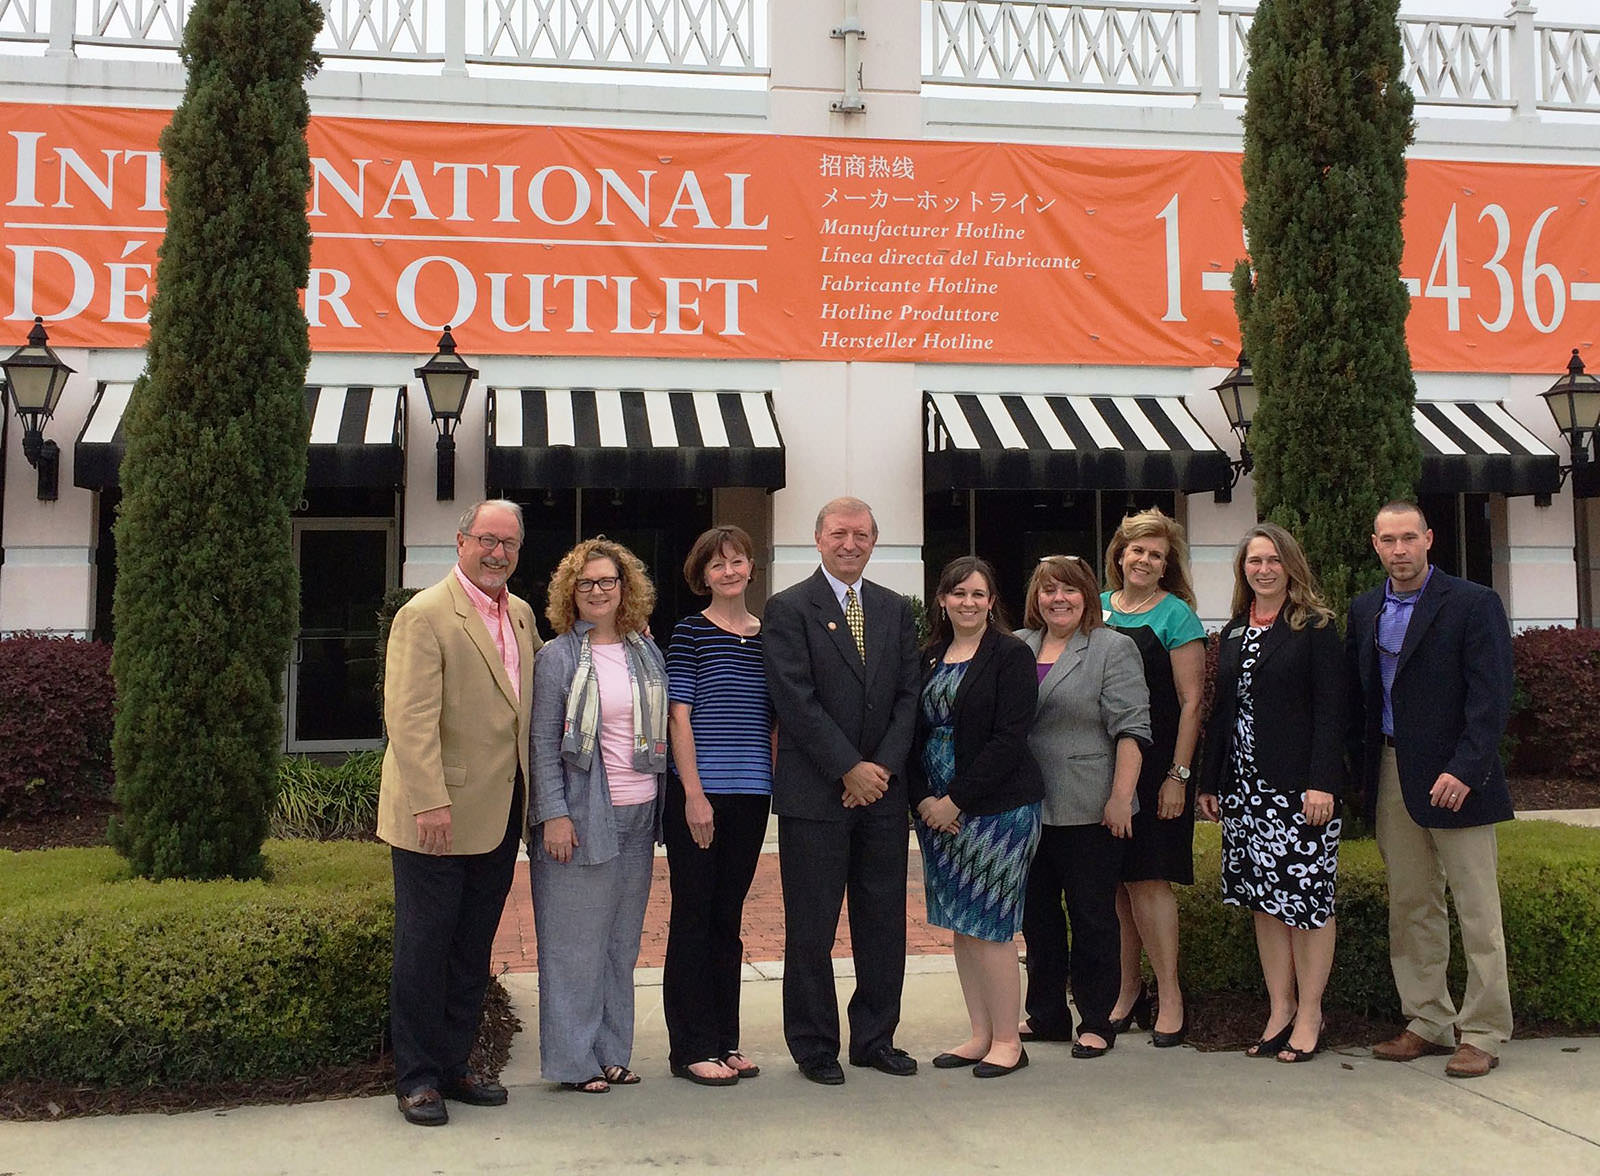 International d cor outlet eyes the darien outlet mall for International decor outlet darien ga